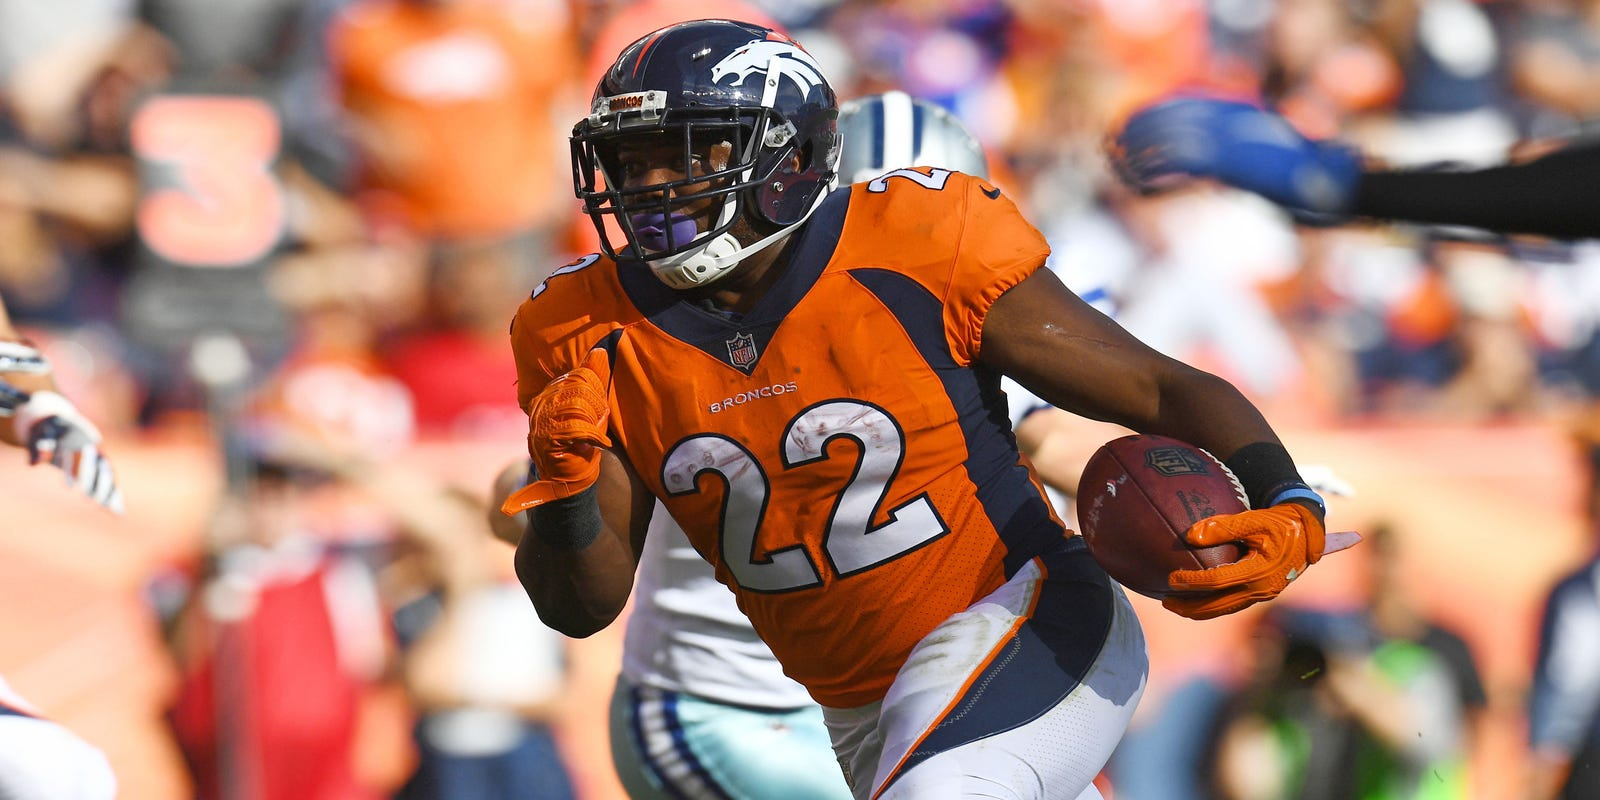 Cj anderson released by broncos who could look to draft rb early voltagebd Images